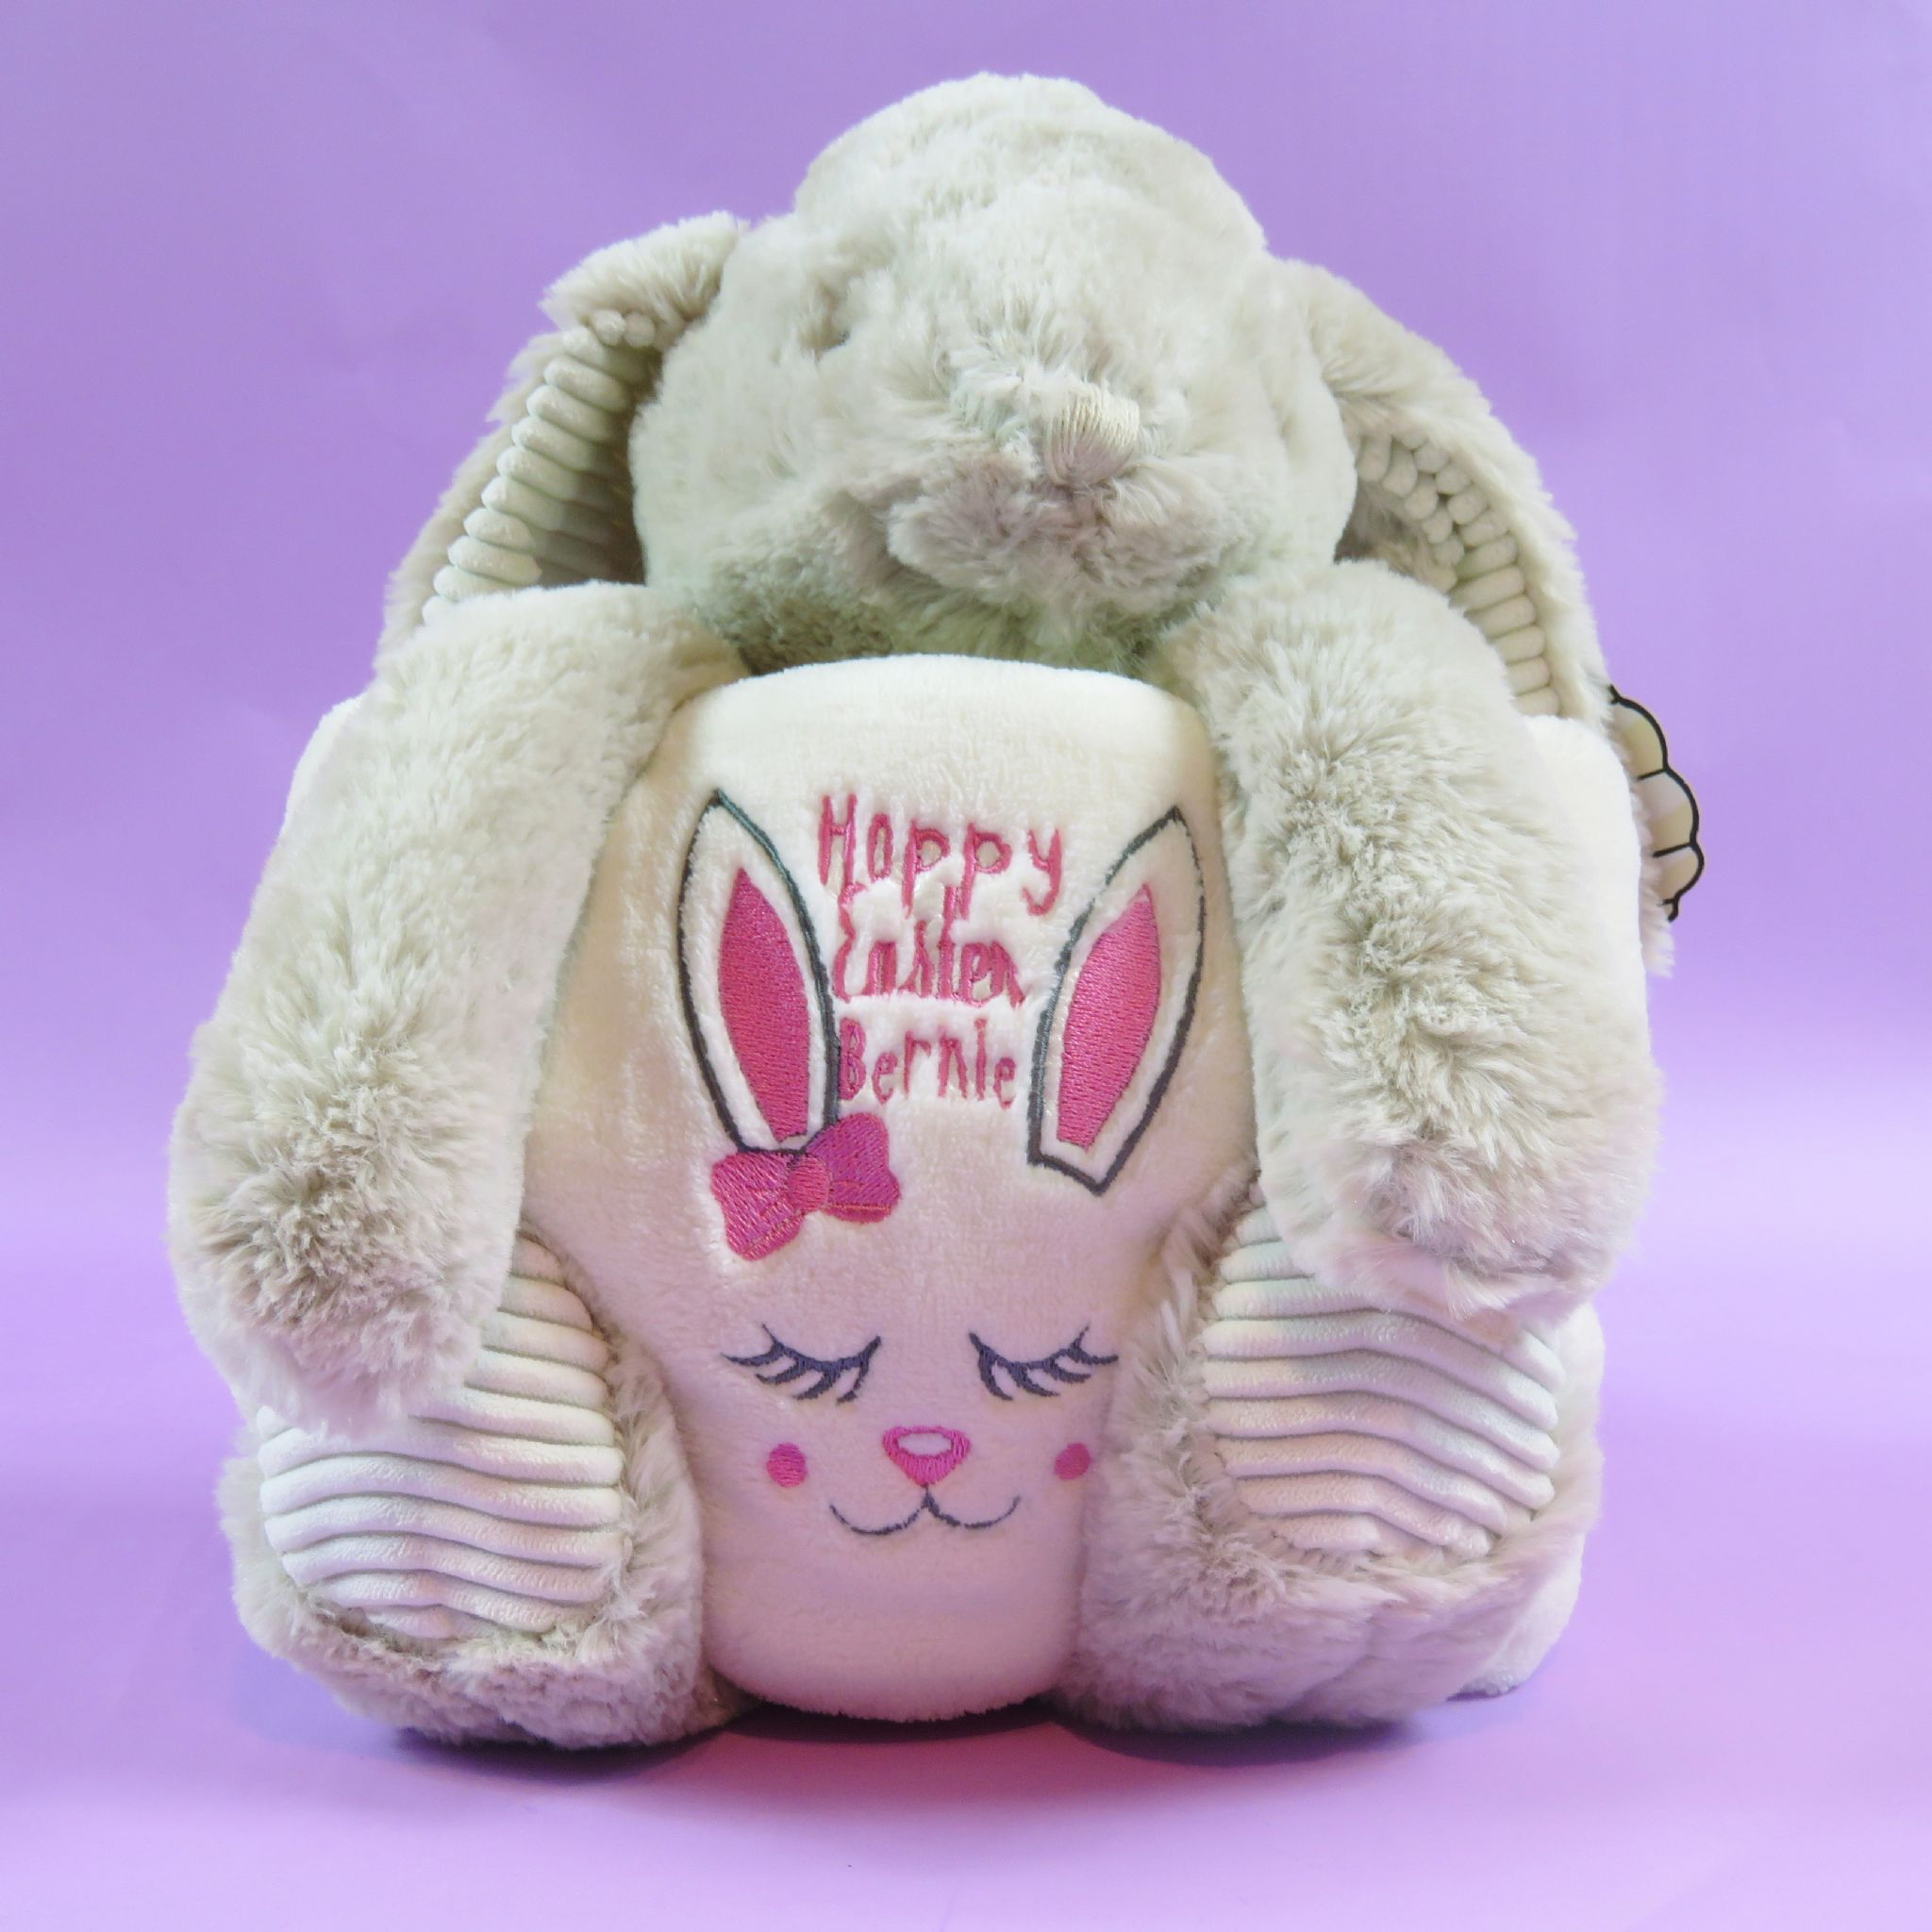 Personalised rabbit soft toy and blanket embroidered hoppy easter personalised rabbit soft toy and blanket embroidered hoppy easter easter gift new born baby gift negle Gallery